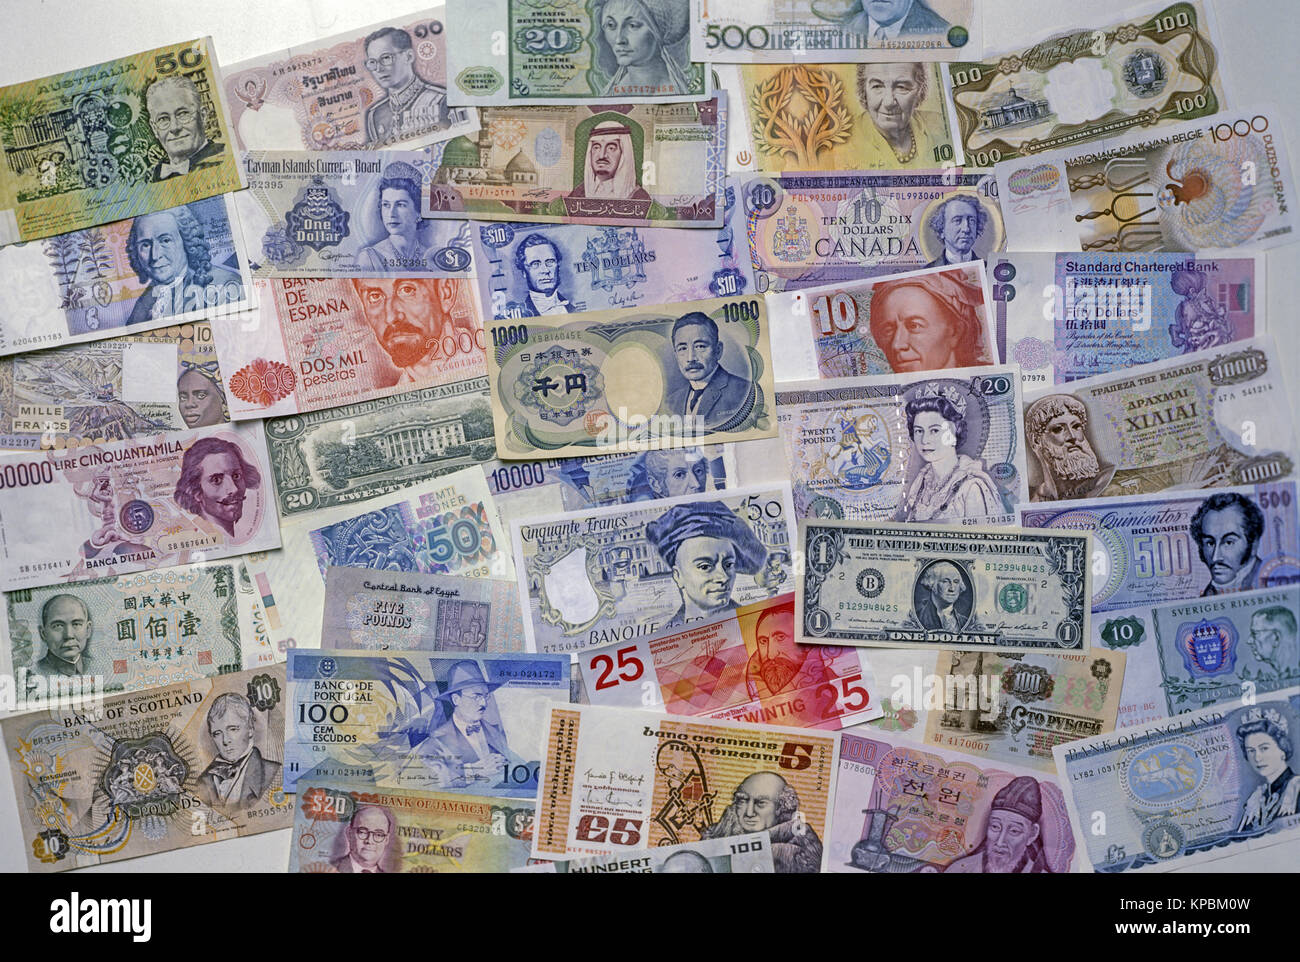 1988 HISTORICAL NATIONAL CURRENCIES - Stock Image